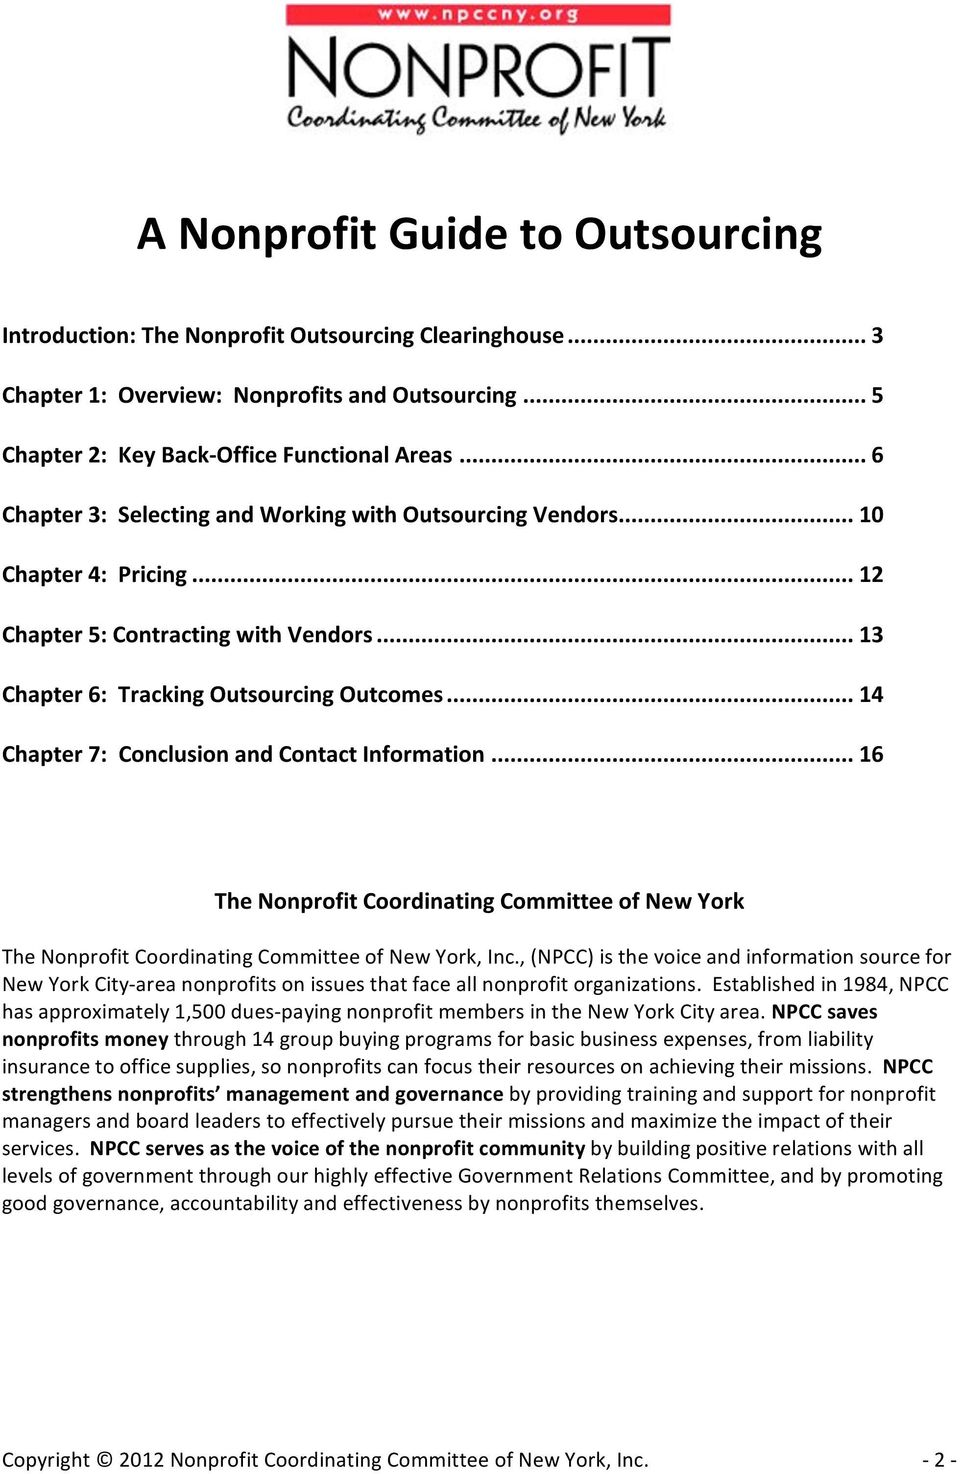 .. 14 Chapter7:ConclusionandContactInformation... 16 TheNonprofitCoordinatingCommitteeofNewYork TheNonprofitCoordinatingCommitteeofNewYork,Inc.